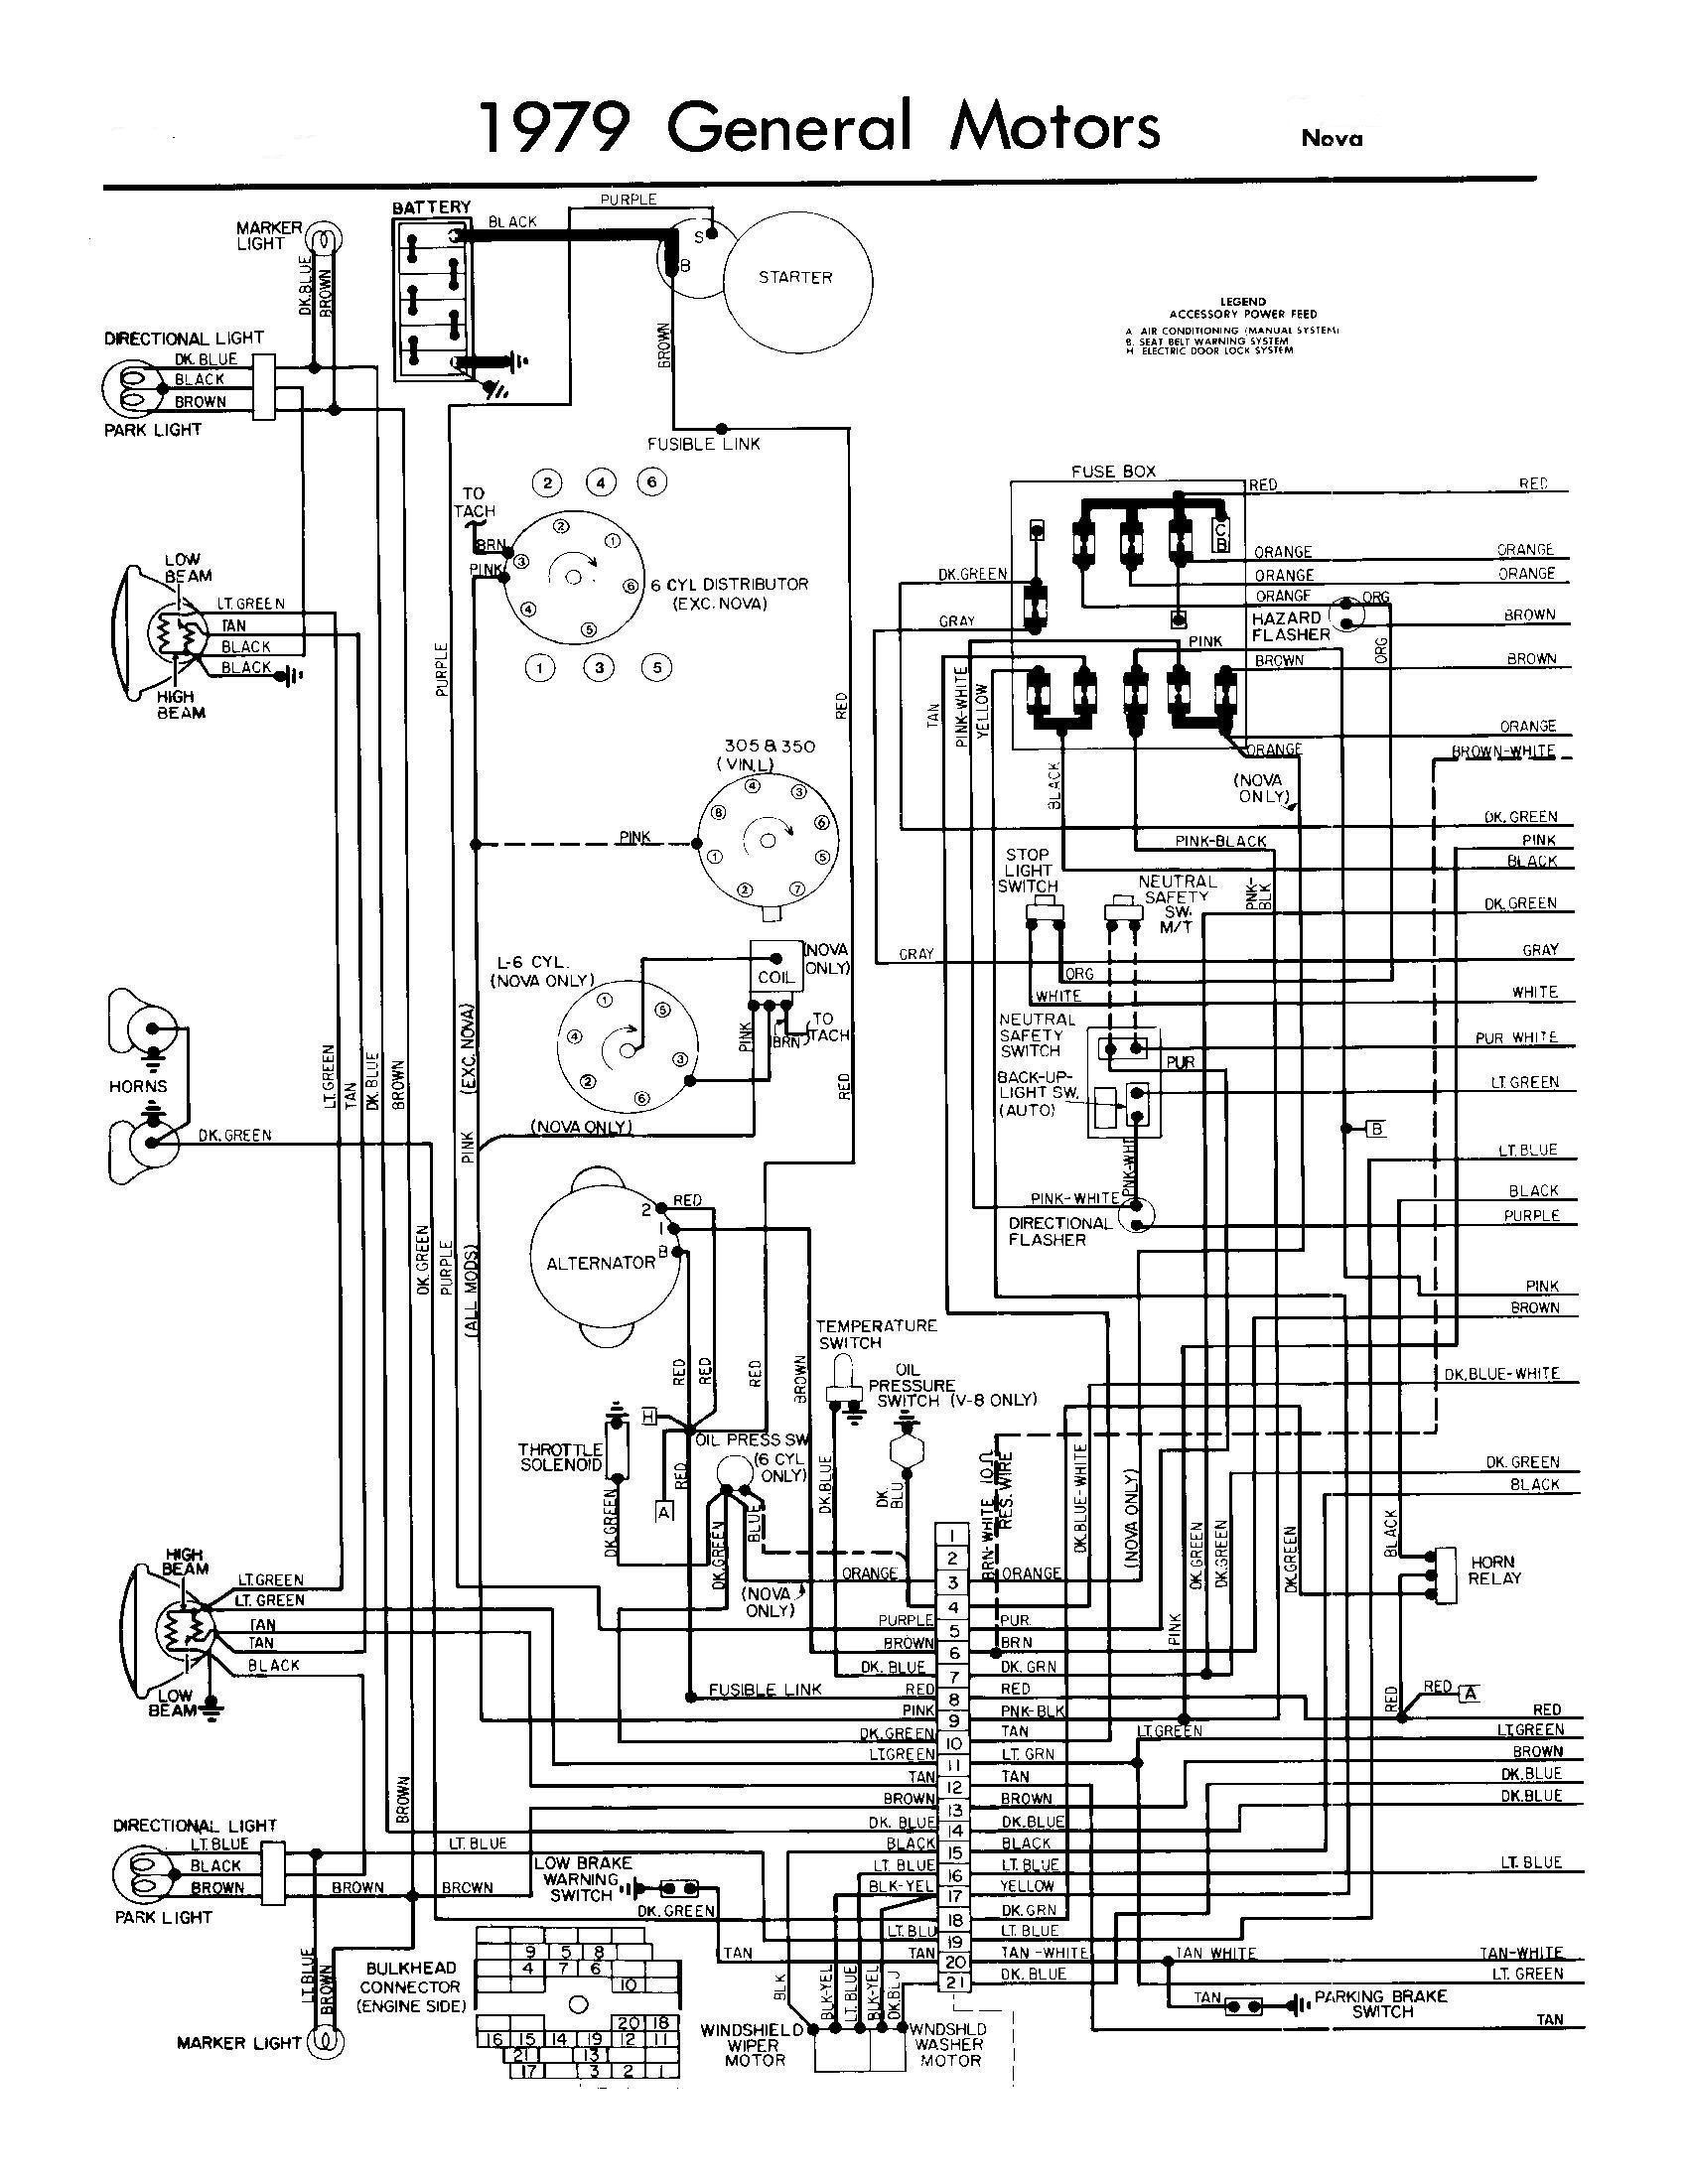 1970 nova wiring wiring diagrams Wiring Diagram for 1966 Mustang